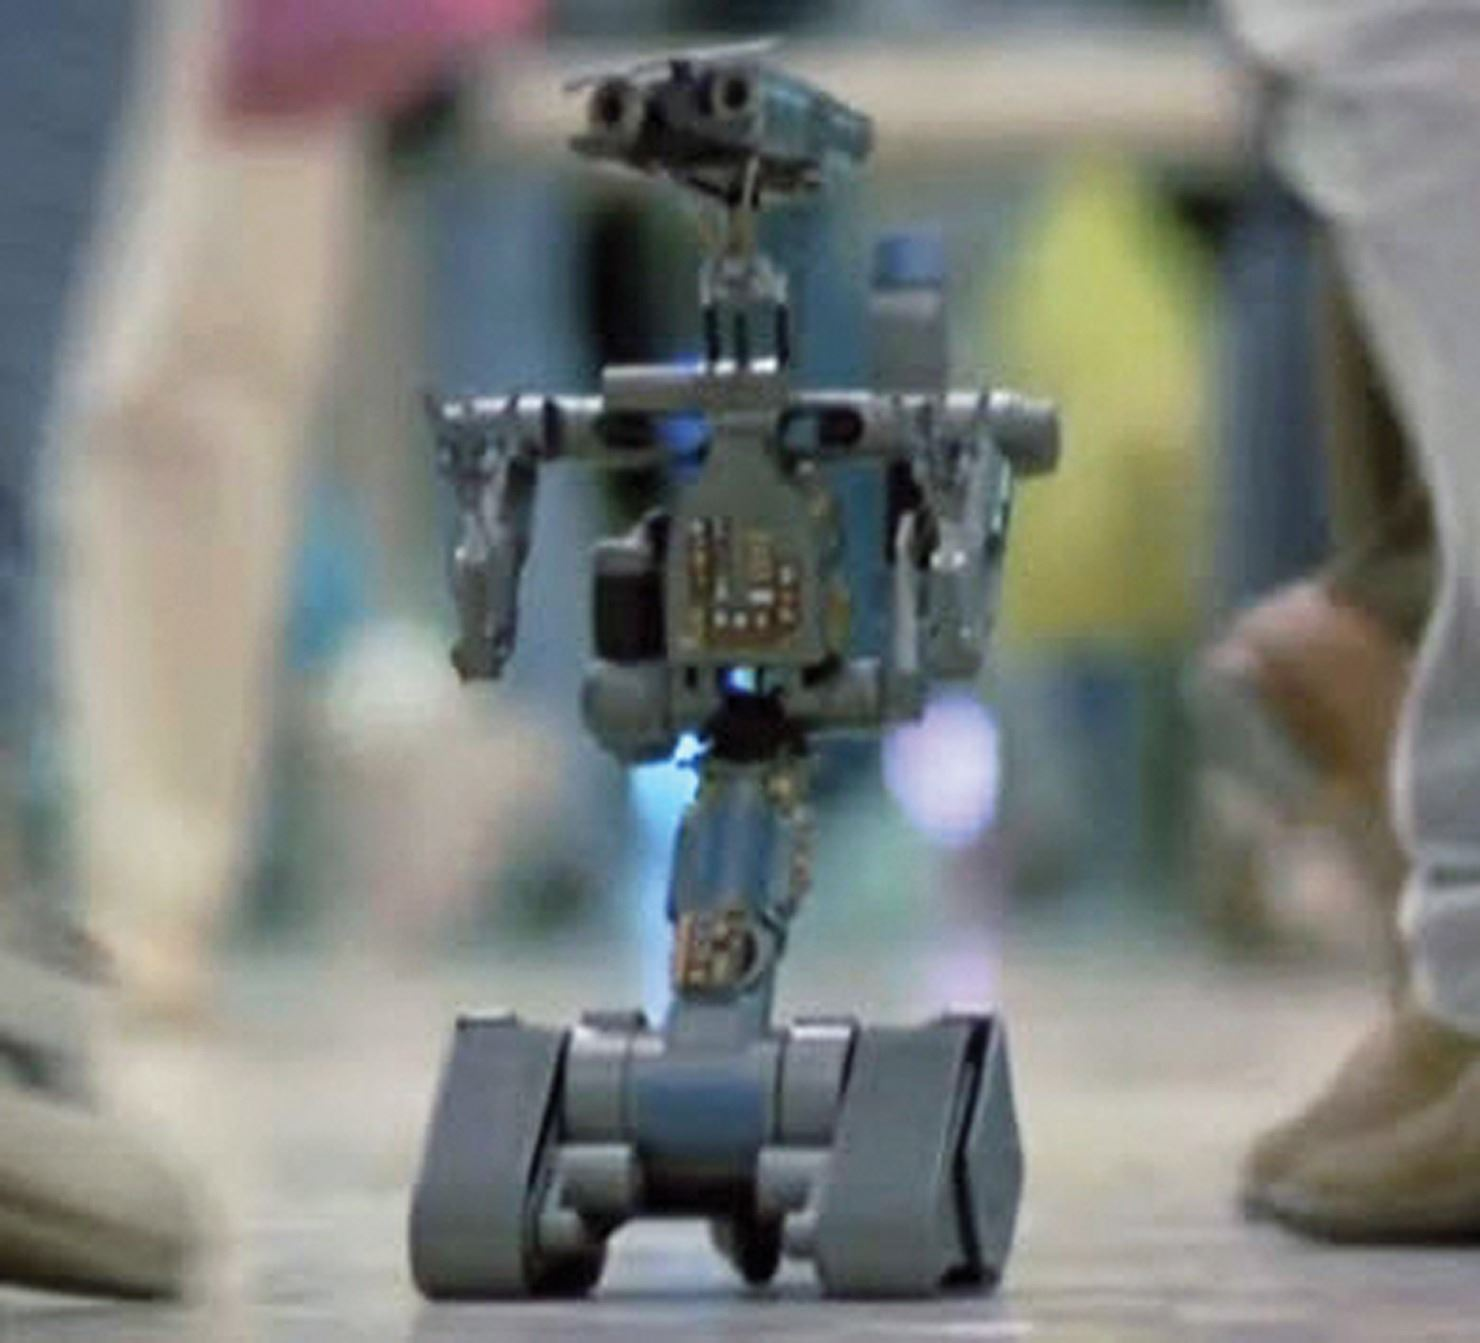 Johnny 5 End Of Short Circuit 2 Great Installation Wiring Diagram Number Is Alive From The Movie Robot Model Rh Icollector Com 4